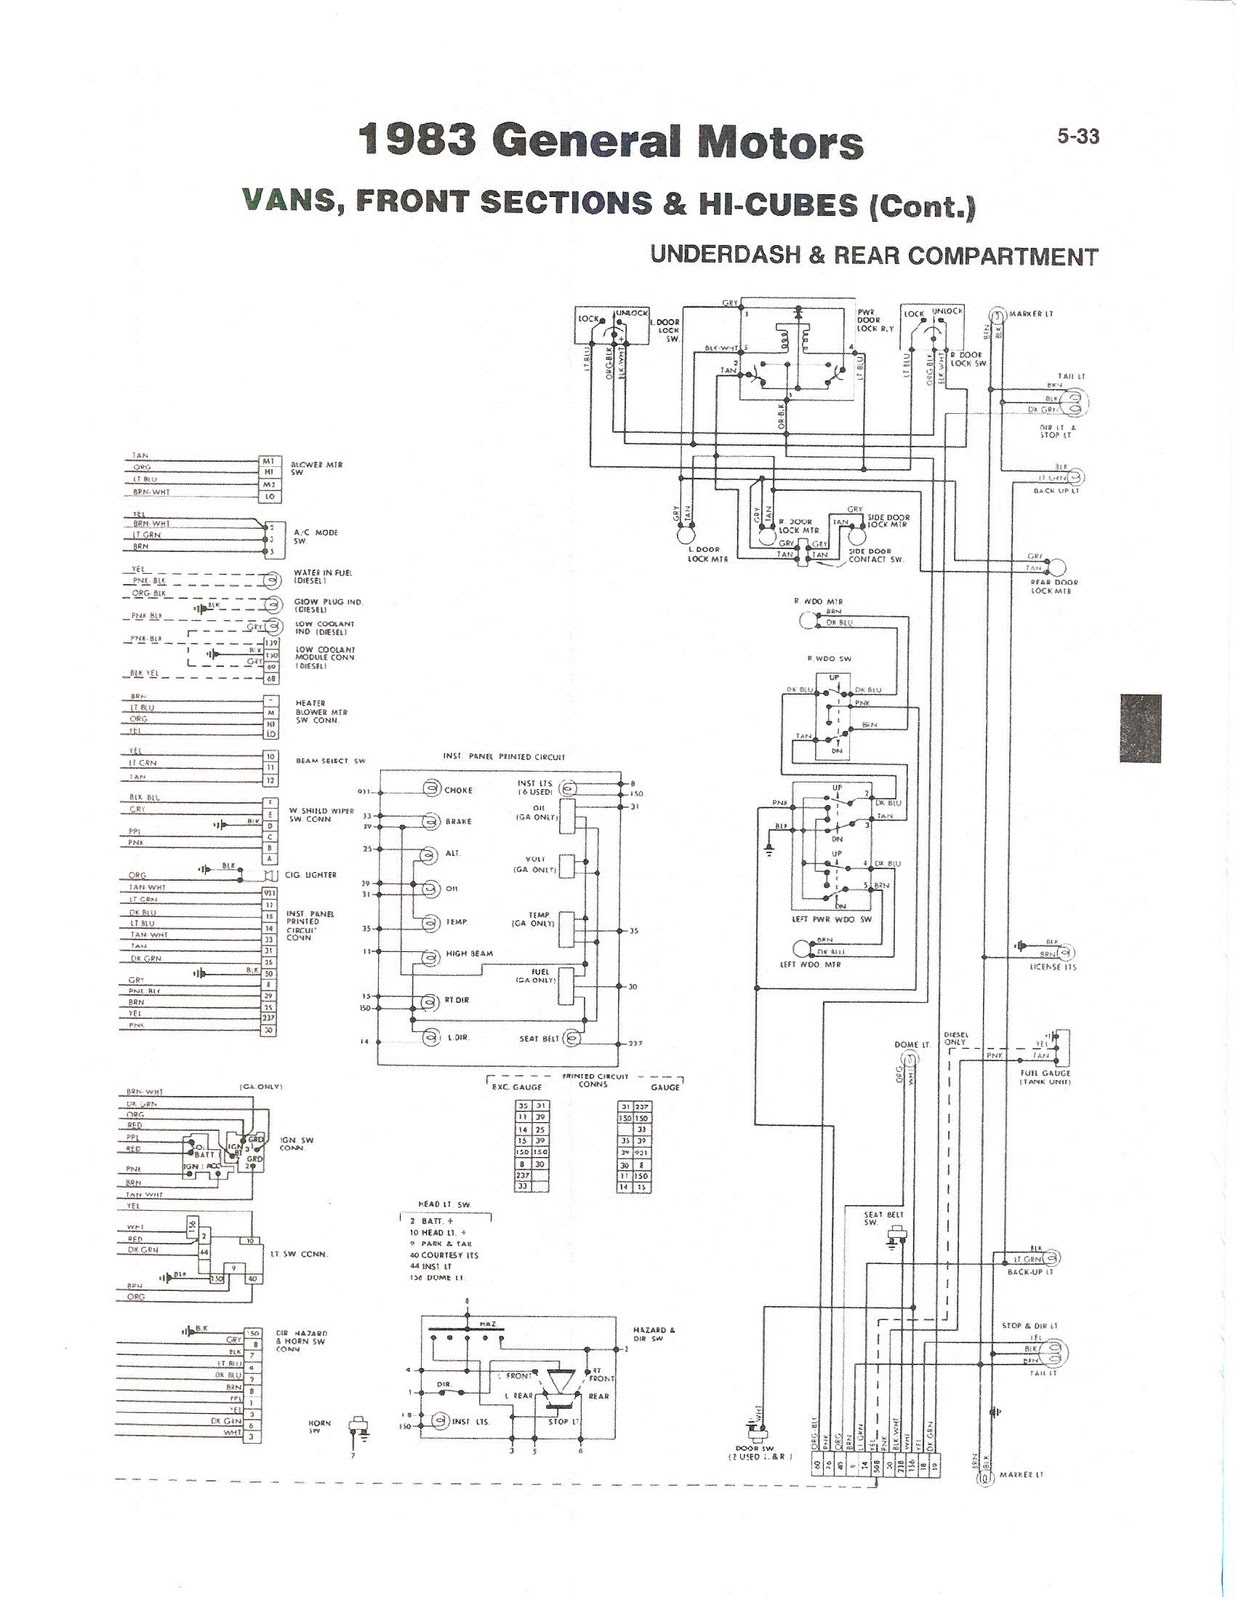 1983 fleetwood rv wiring diagram wiring diagram library 2012 Fleetwood Discovery Wiring-Diagram